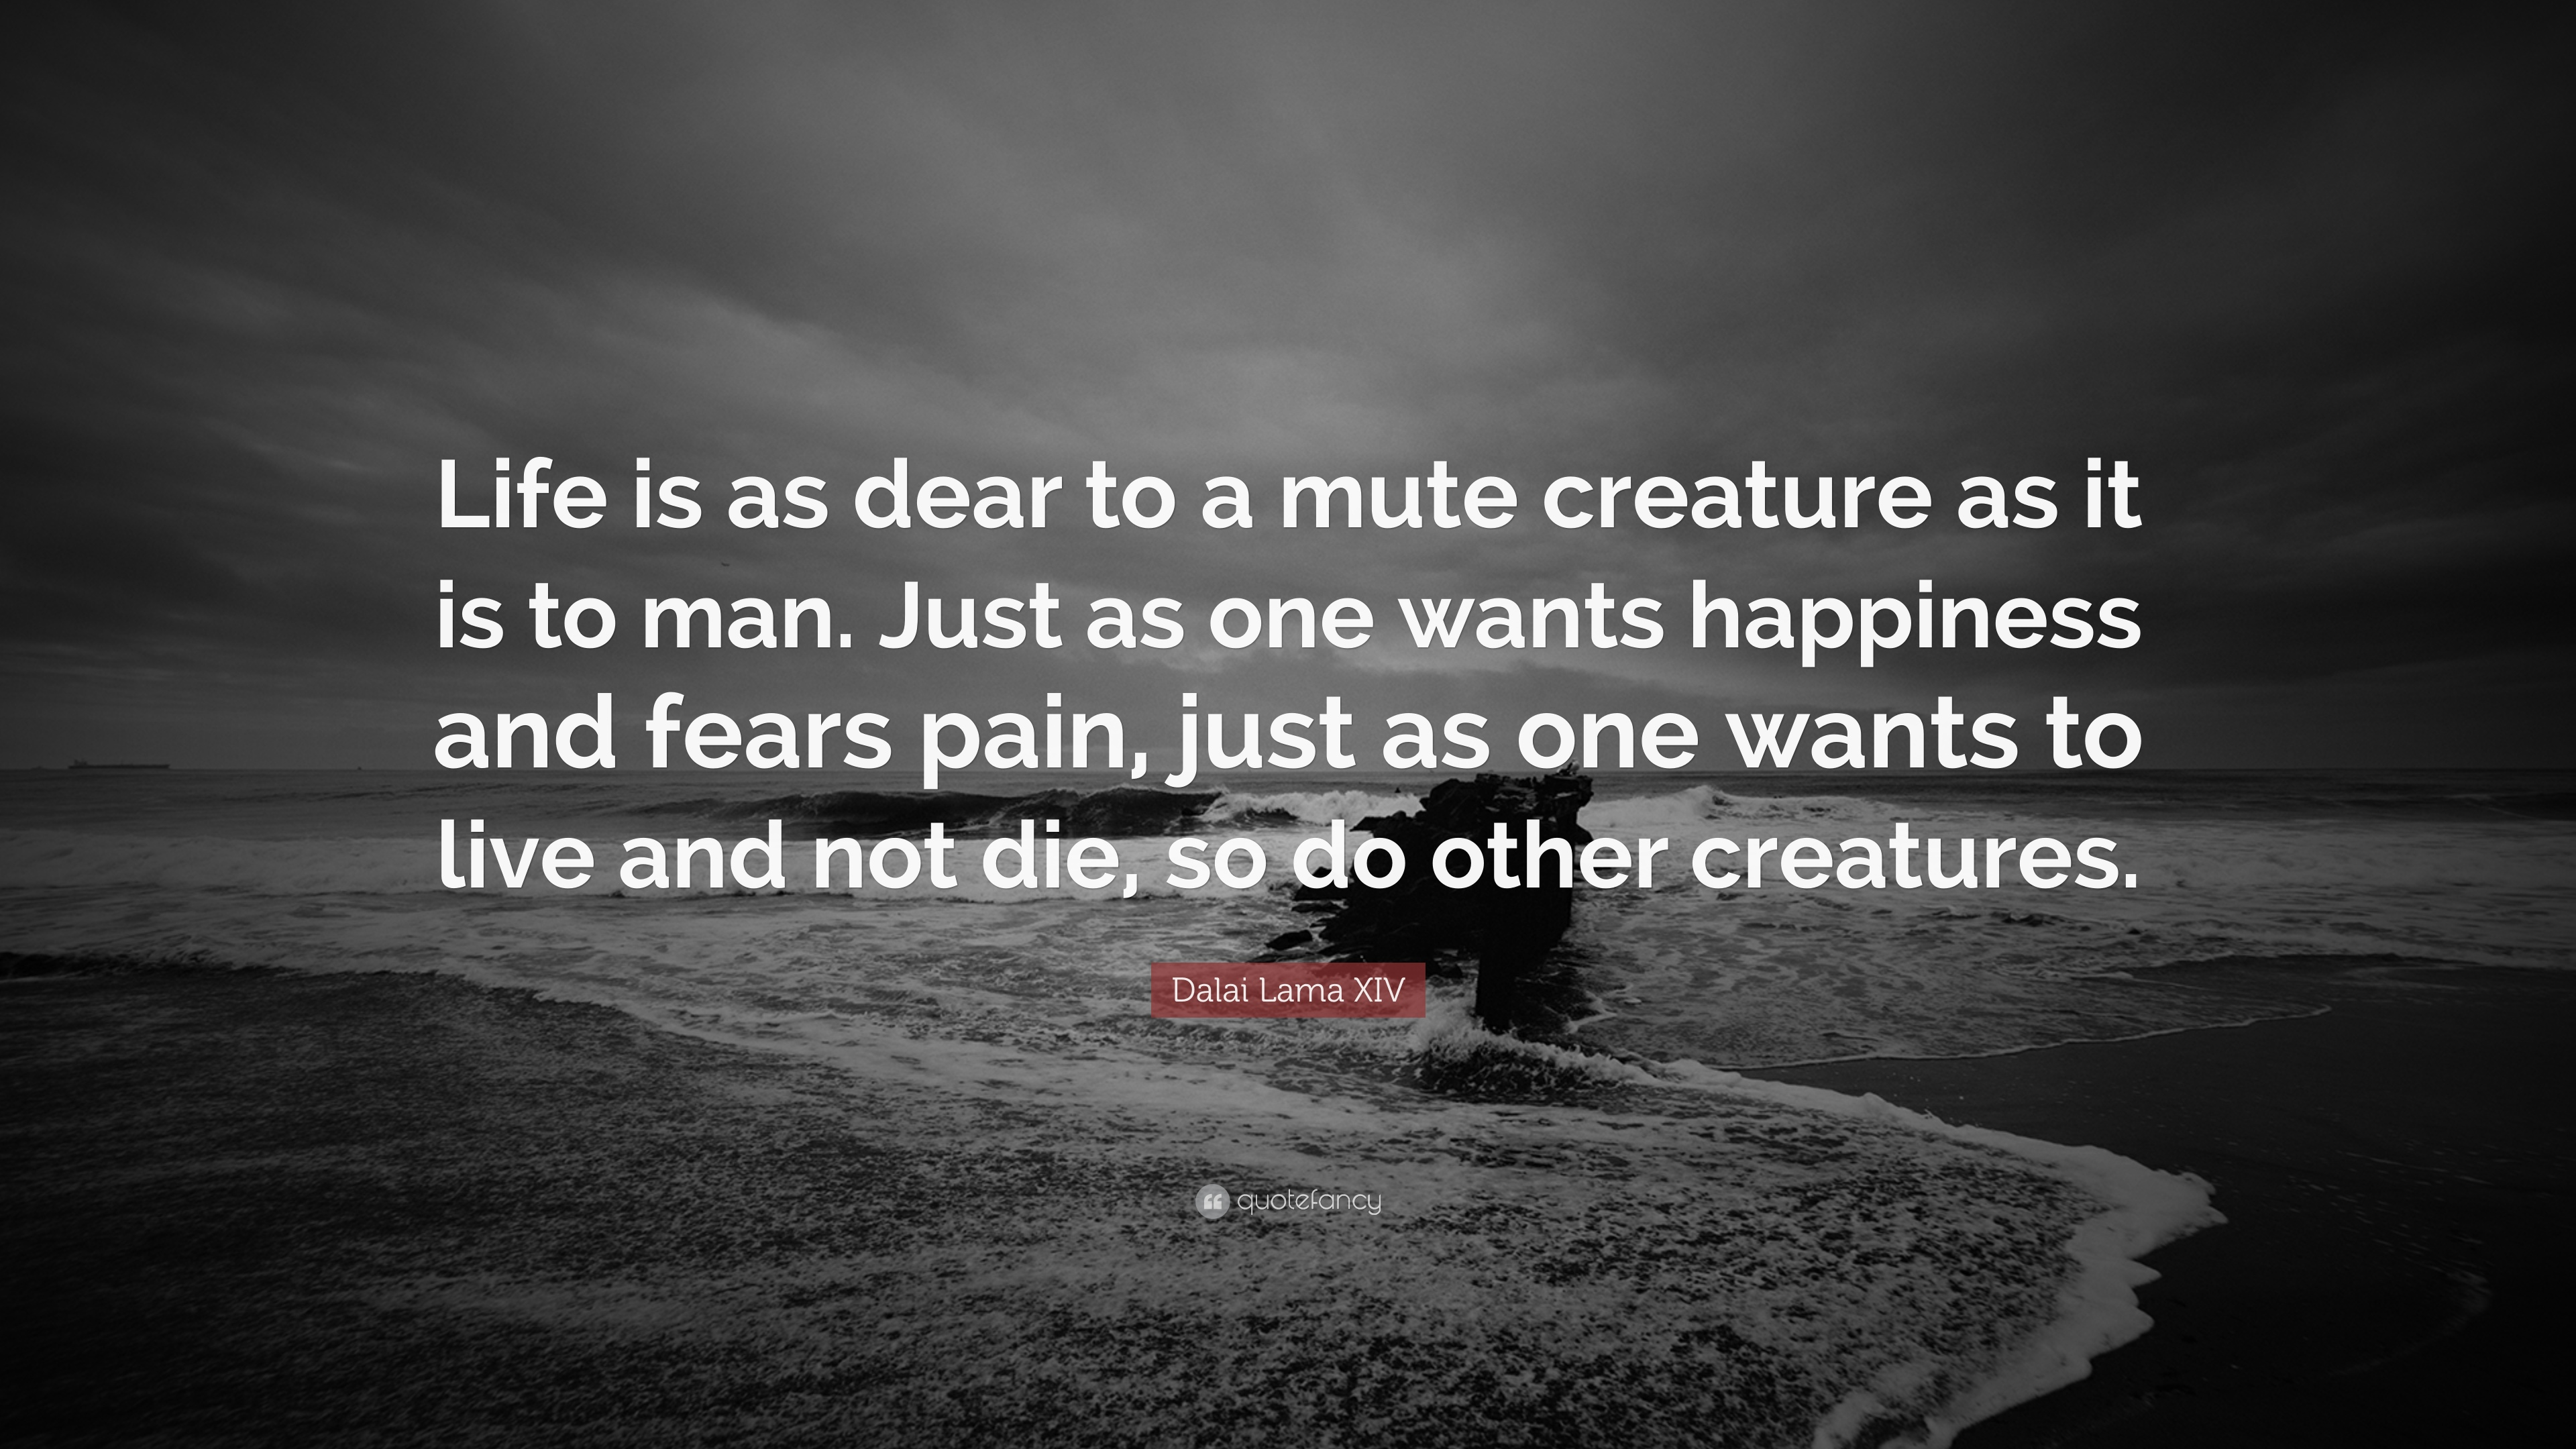 Dalai Lama XIV Quote: U201cLife Is As Dear To A Mute Creature As It